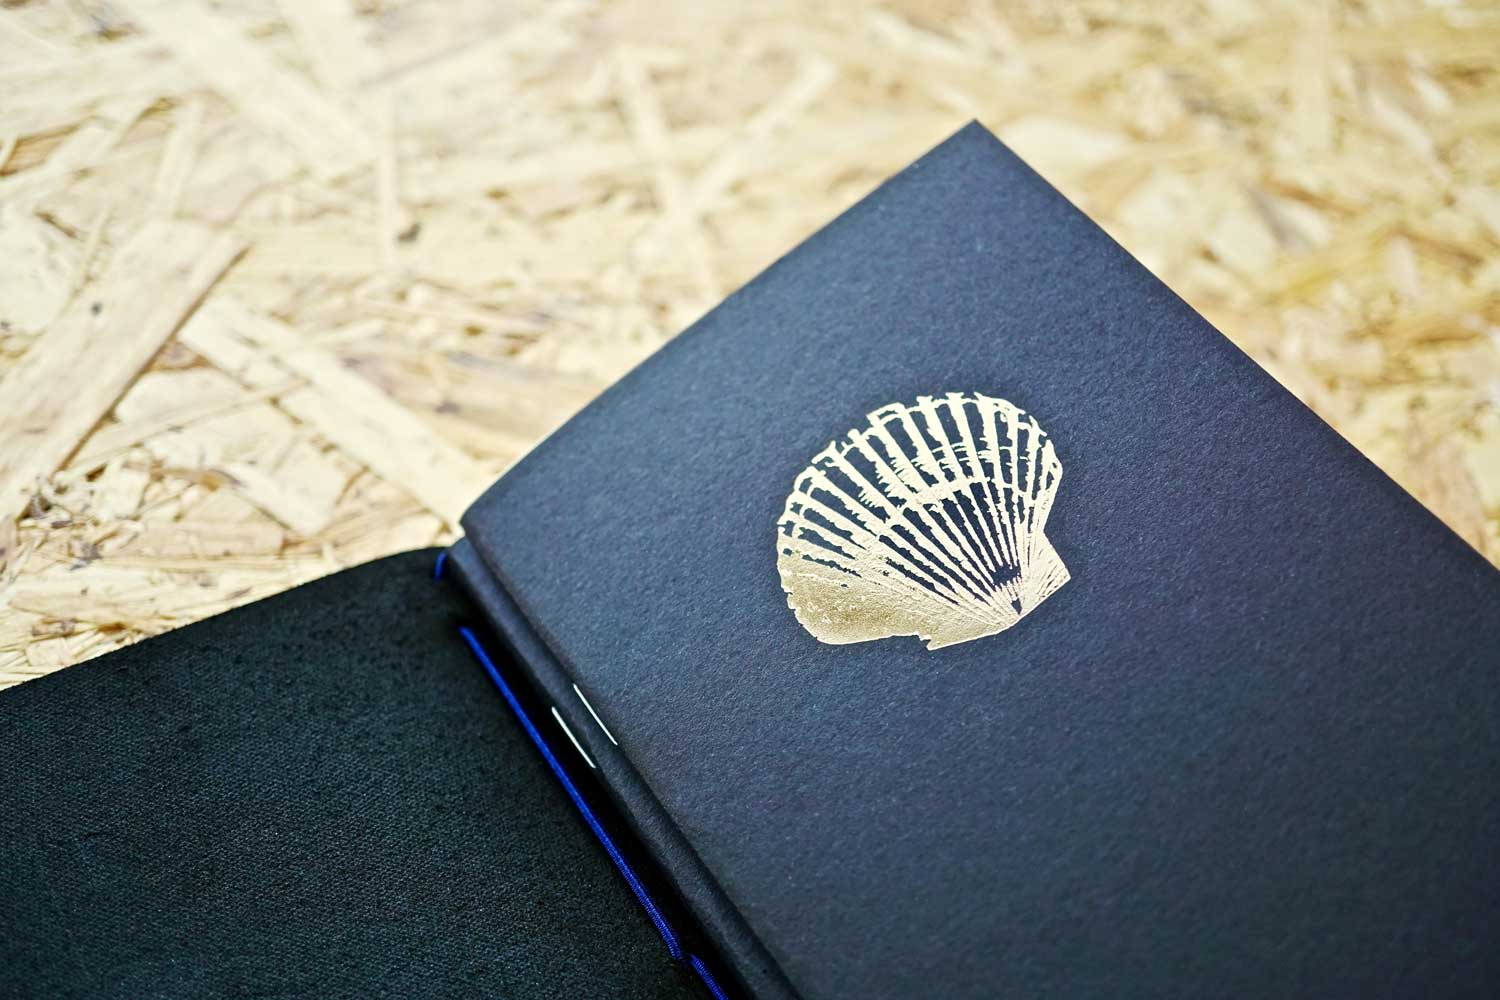 Never-ending journal - Seas the day, leather travel journal, with 3 A6 pocket size inner notebooks, this photo shows the shell illustration embossed in gold foil onto the cover